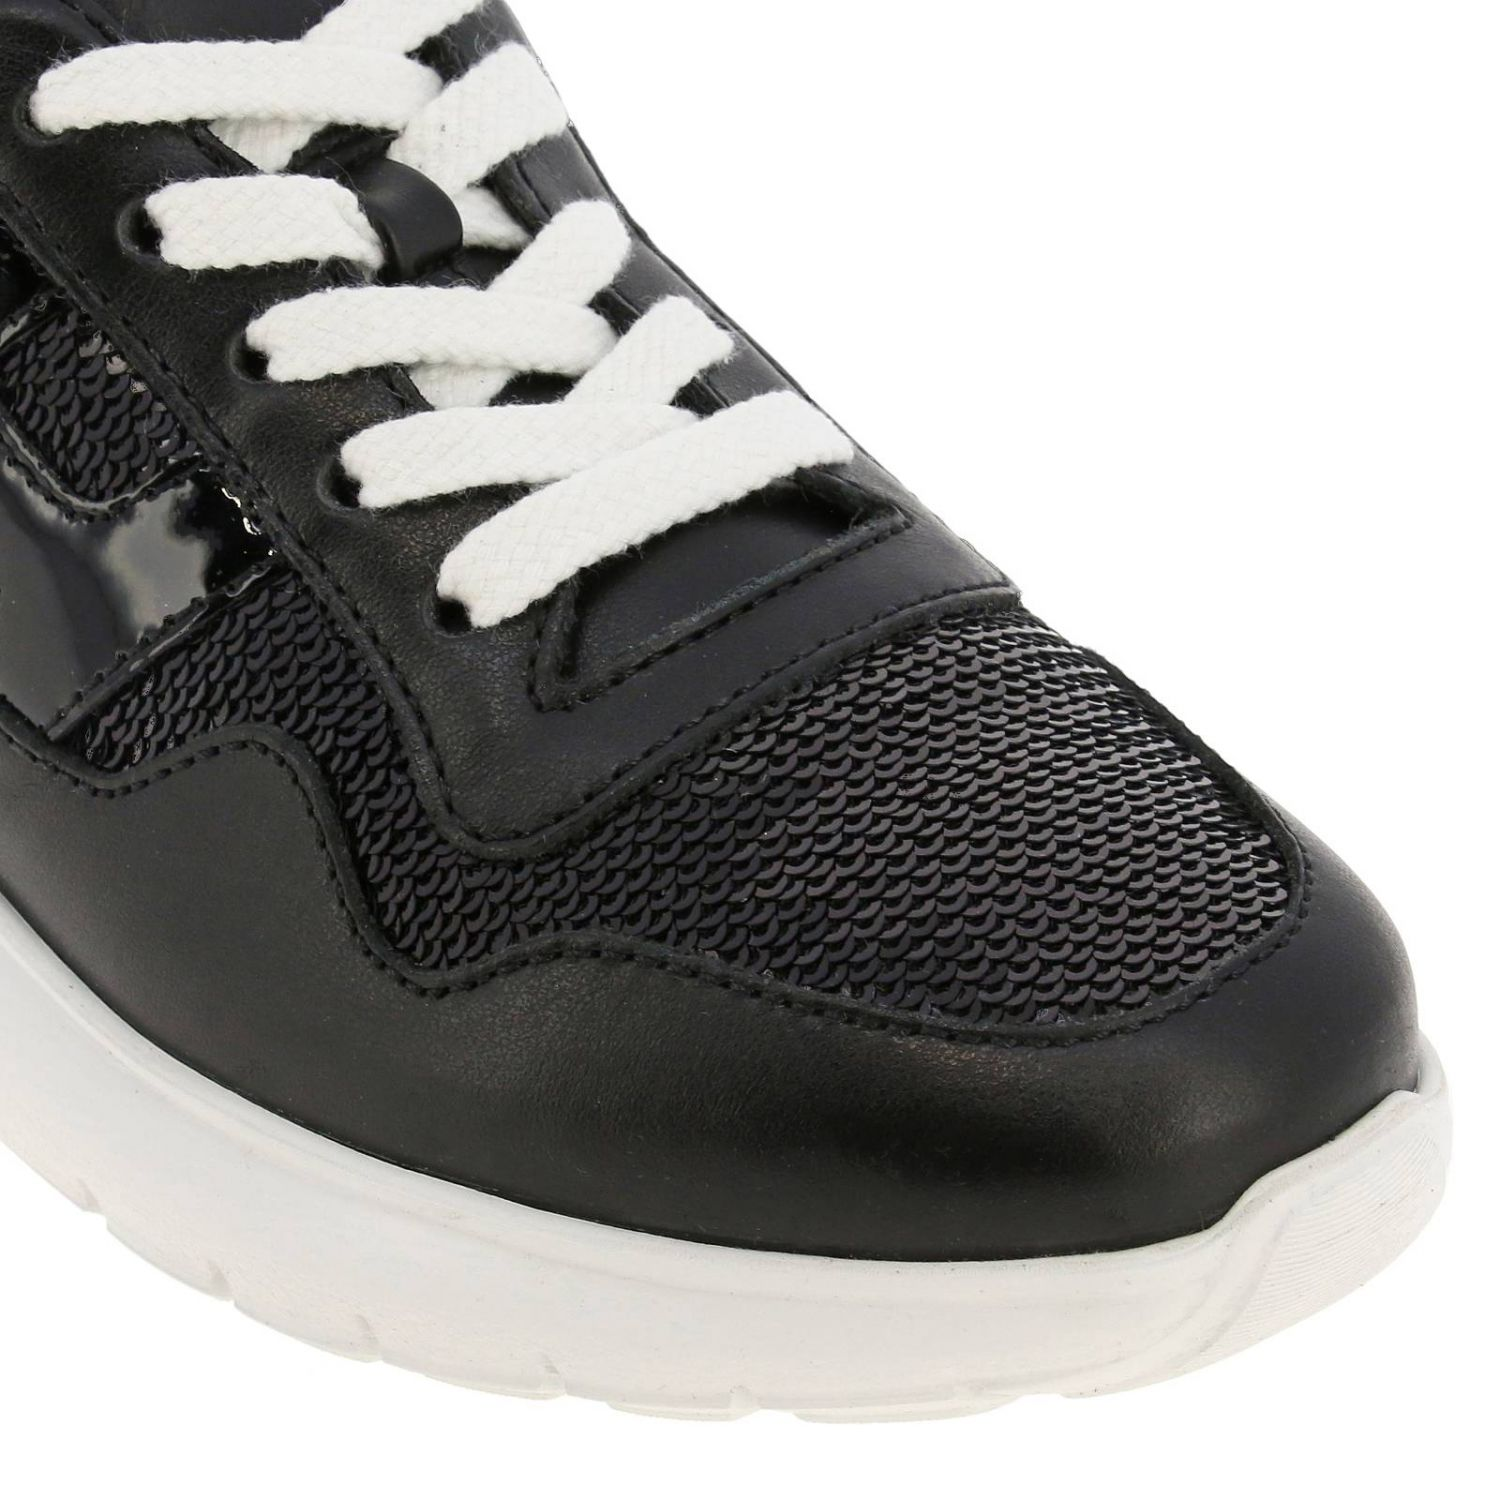 Cube Hogan sneakers in leather and sequins black 3